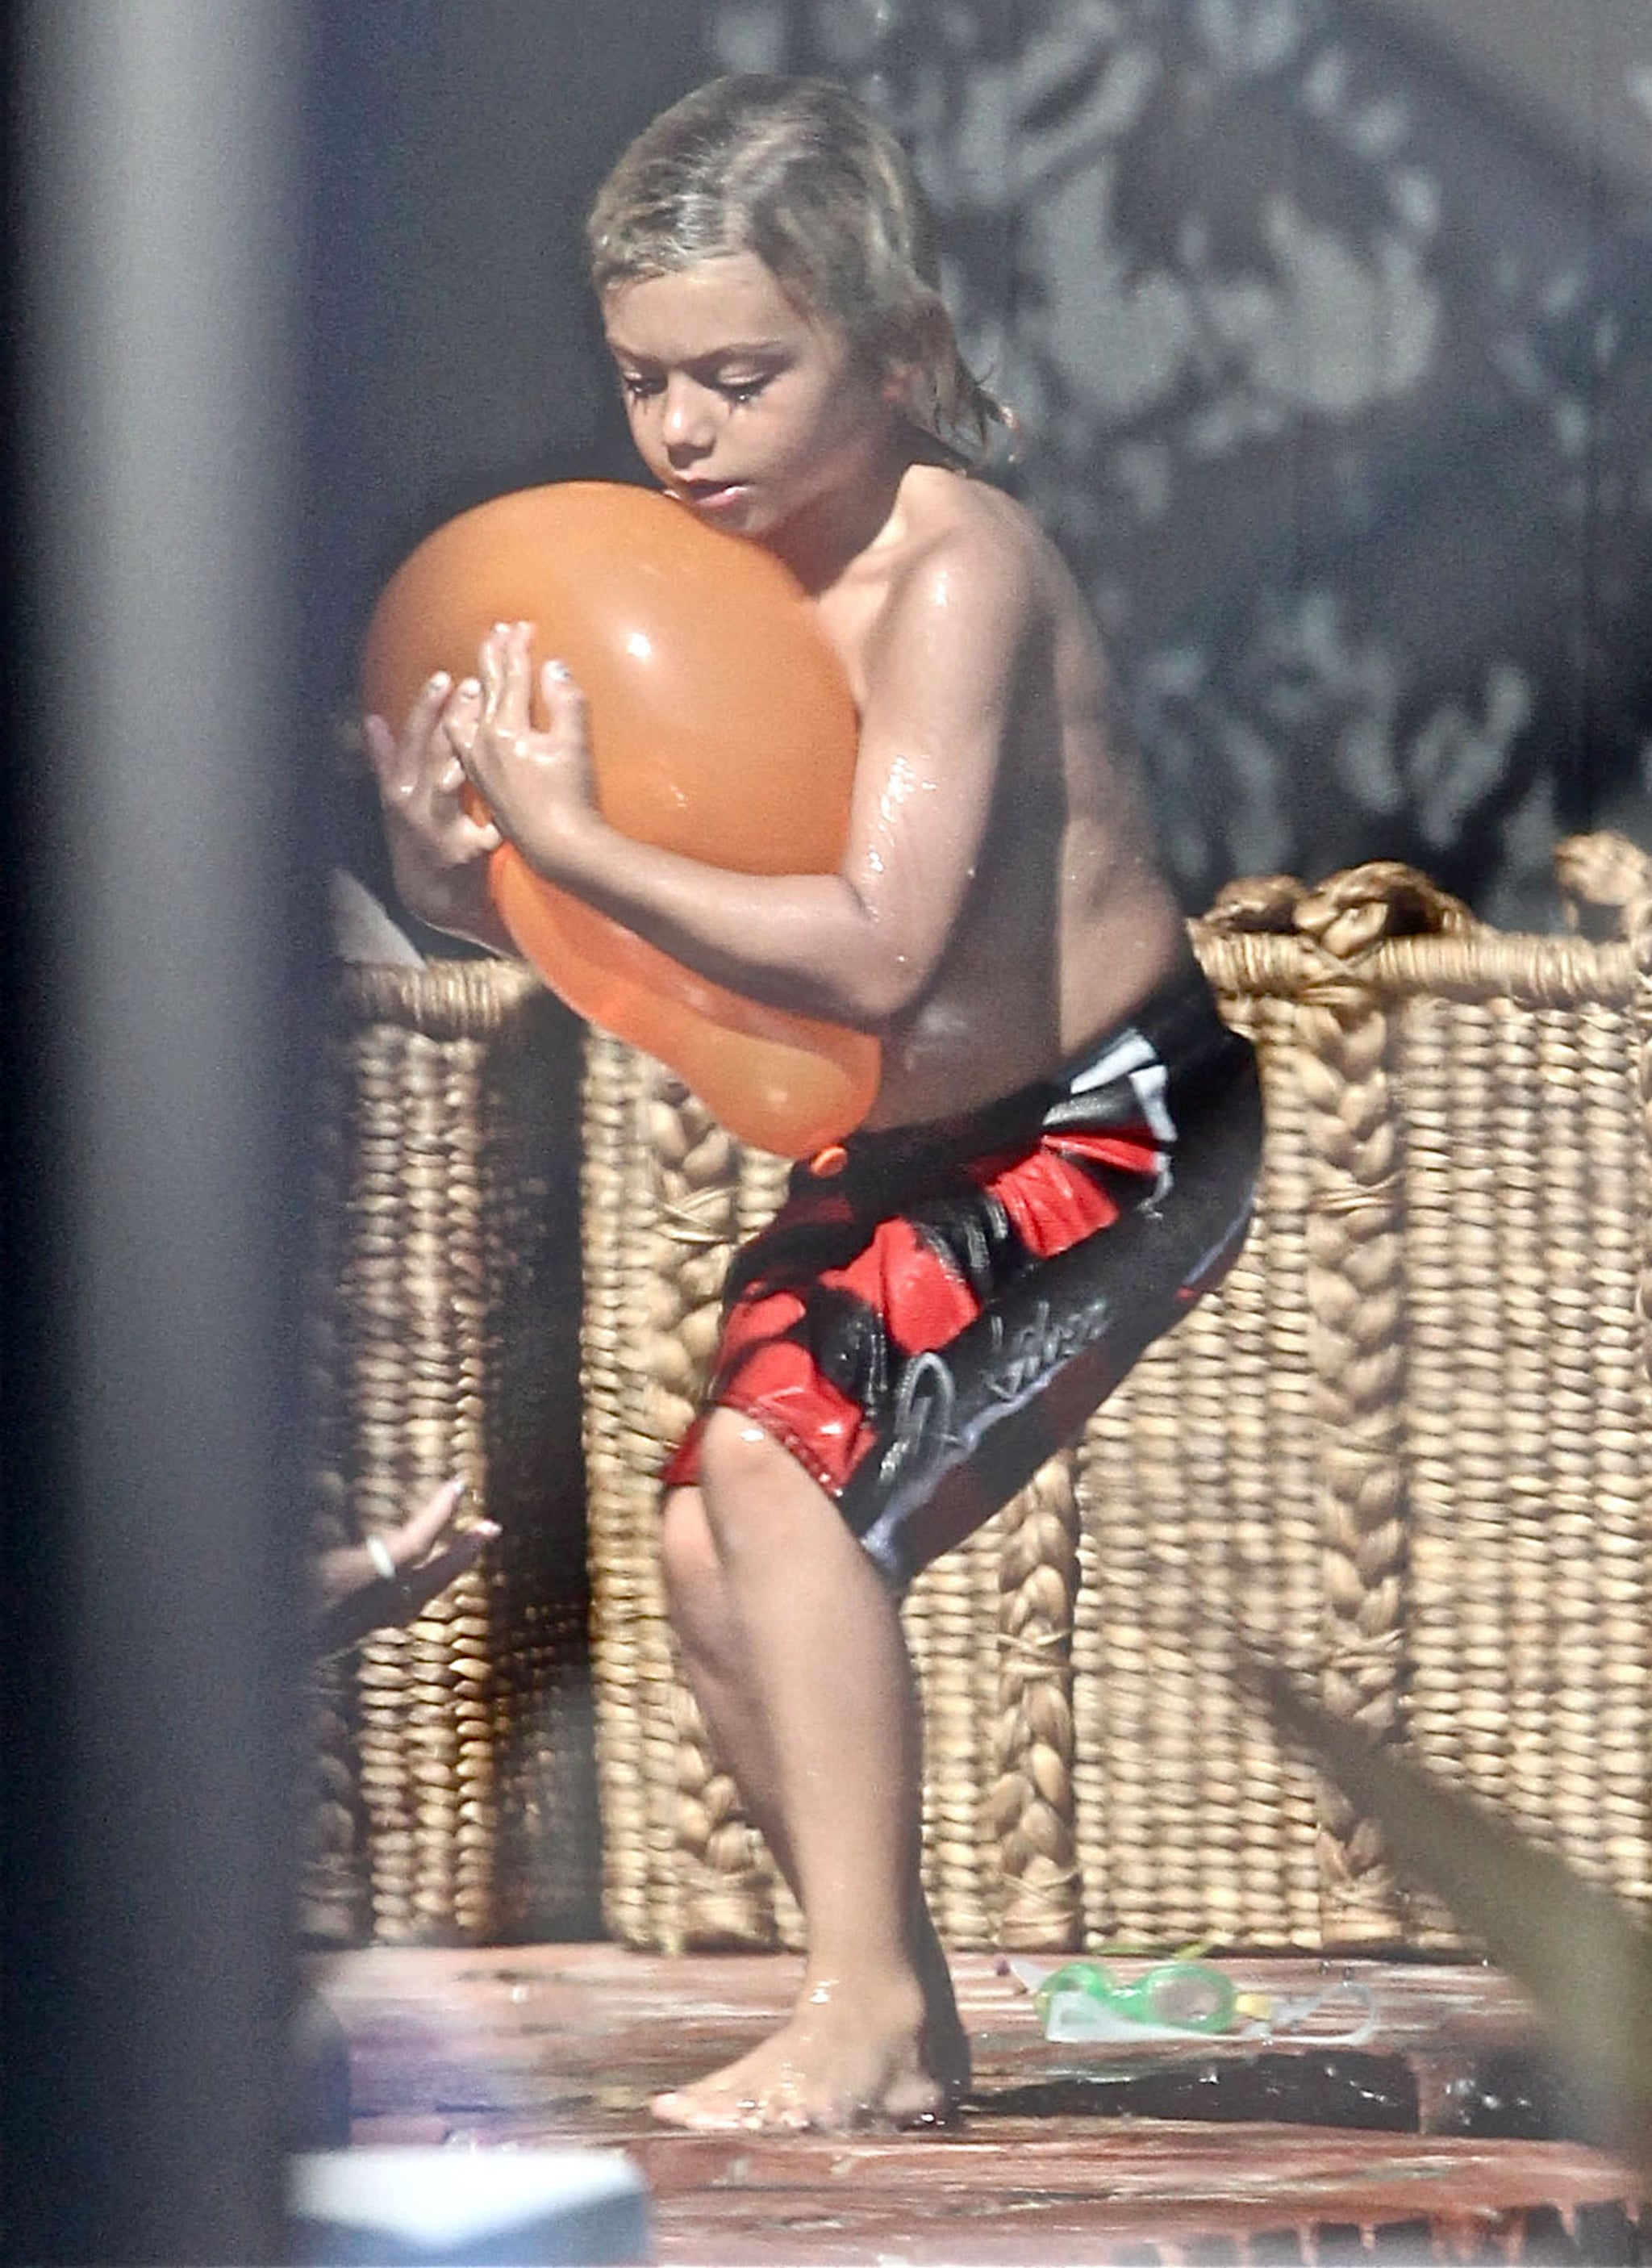 Kingston Rossdale played with water balloons at a Memorial Day party at Joel Silver's house in LA.